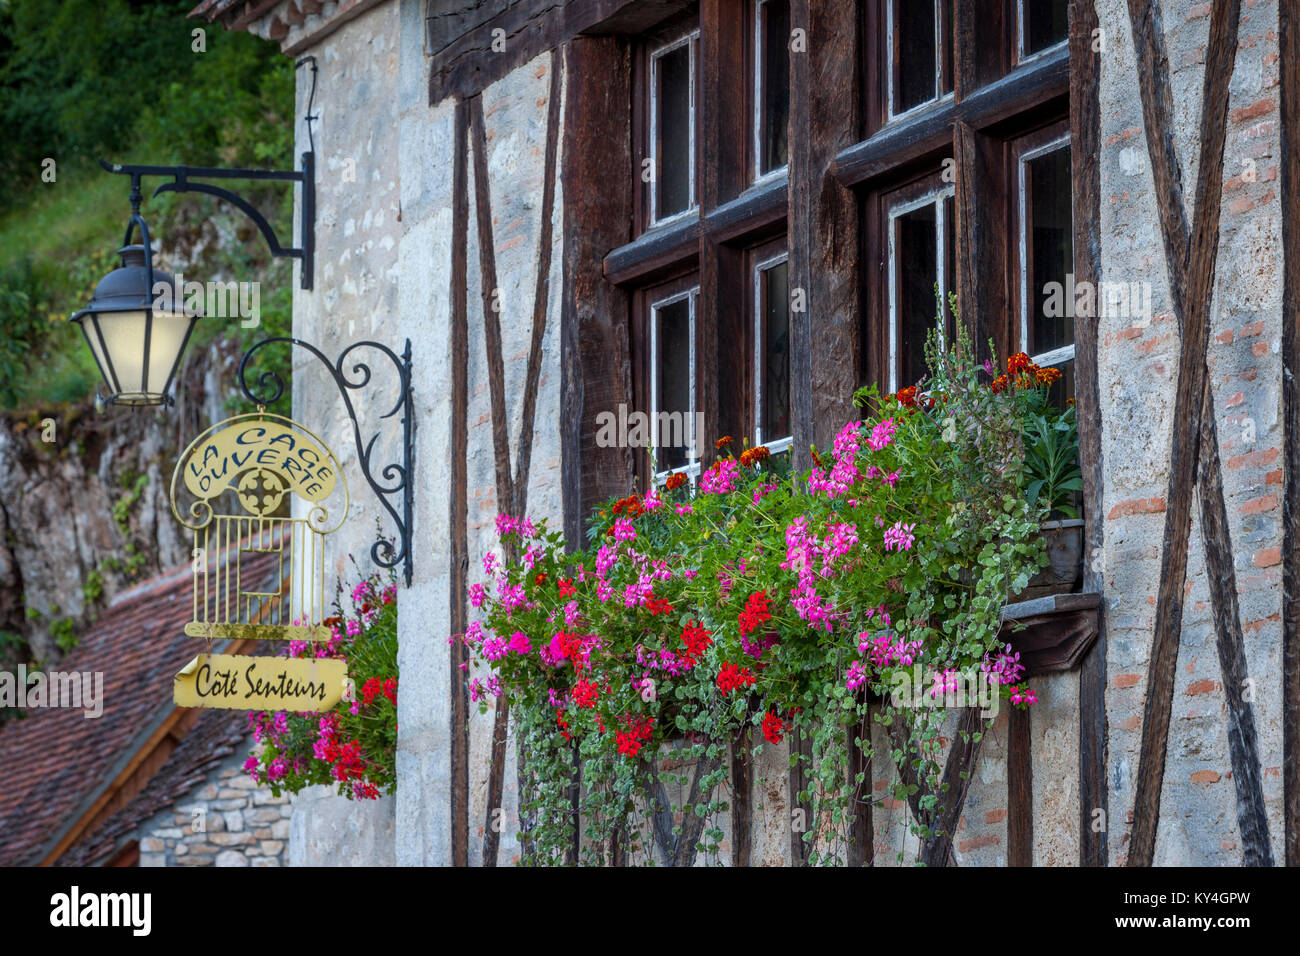 Ancient window and flower box on half-timbered building in Saint Cirq Lapopie, Lot Valley, Occitanie, France - Stock Image